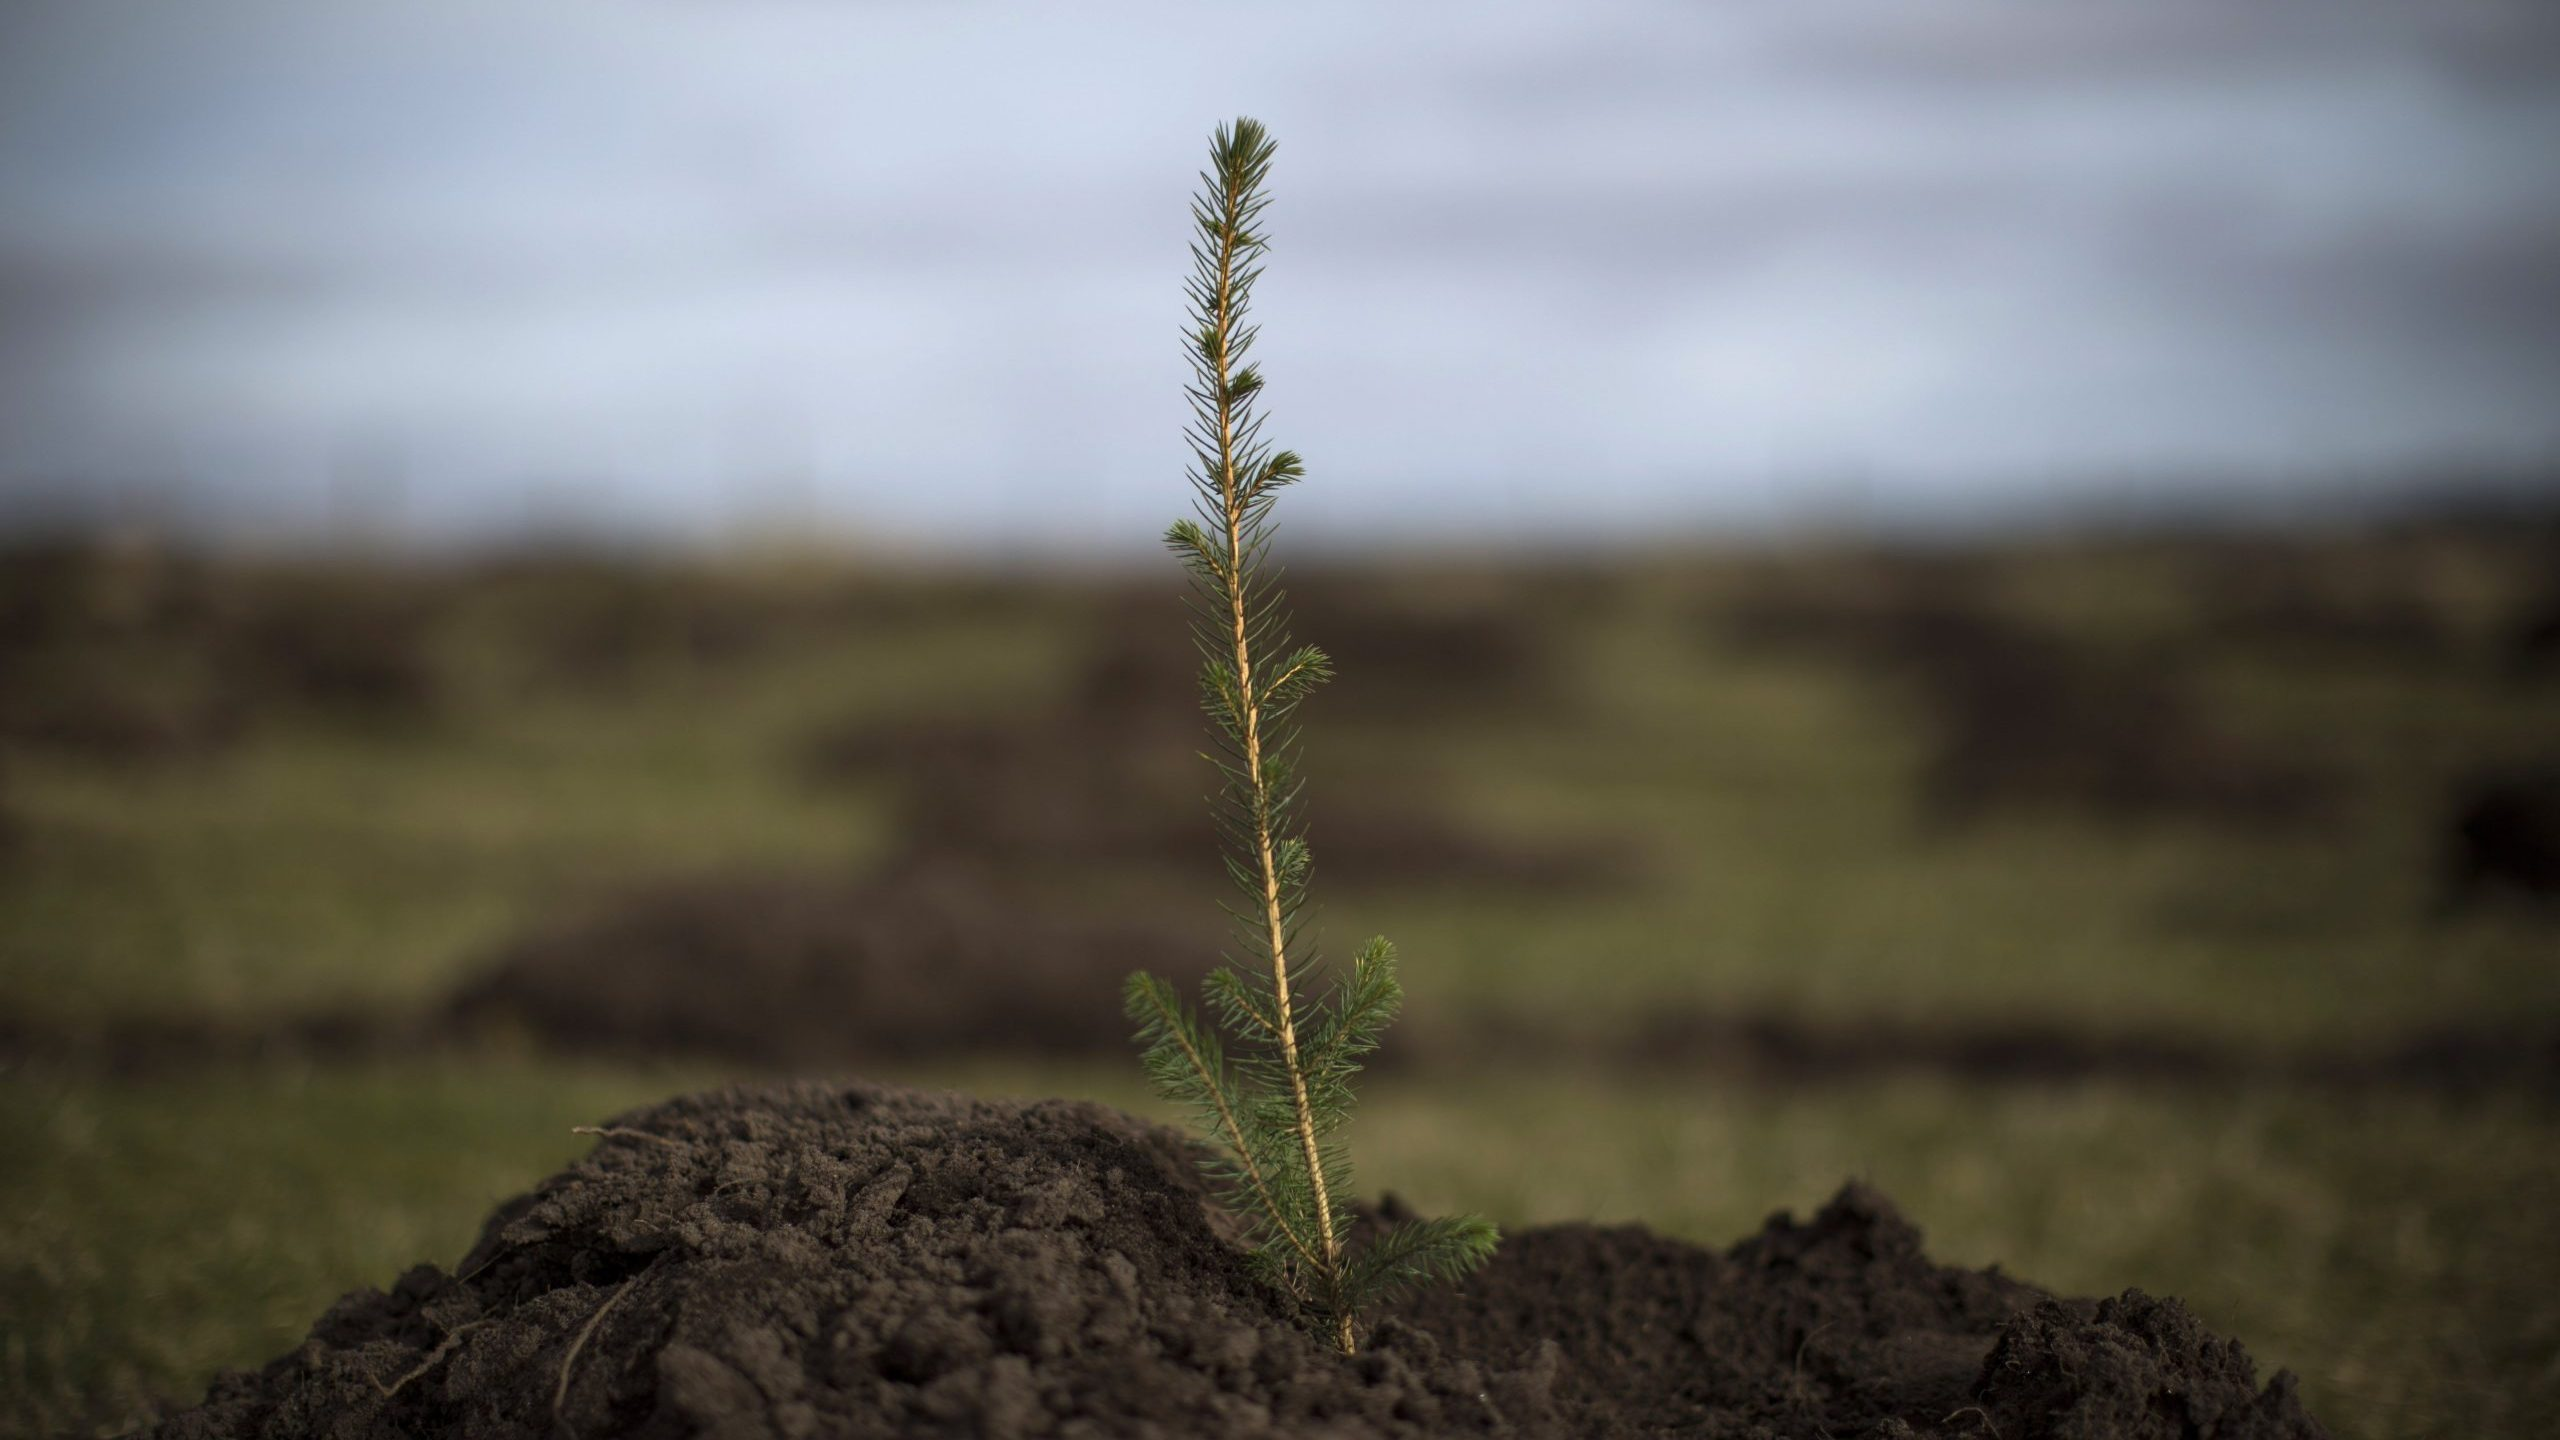 A spruce tree is planted north of Doddington, England, on March 22, 2018. (Credit: Dan Kitwood / Getty Images)